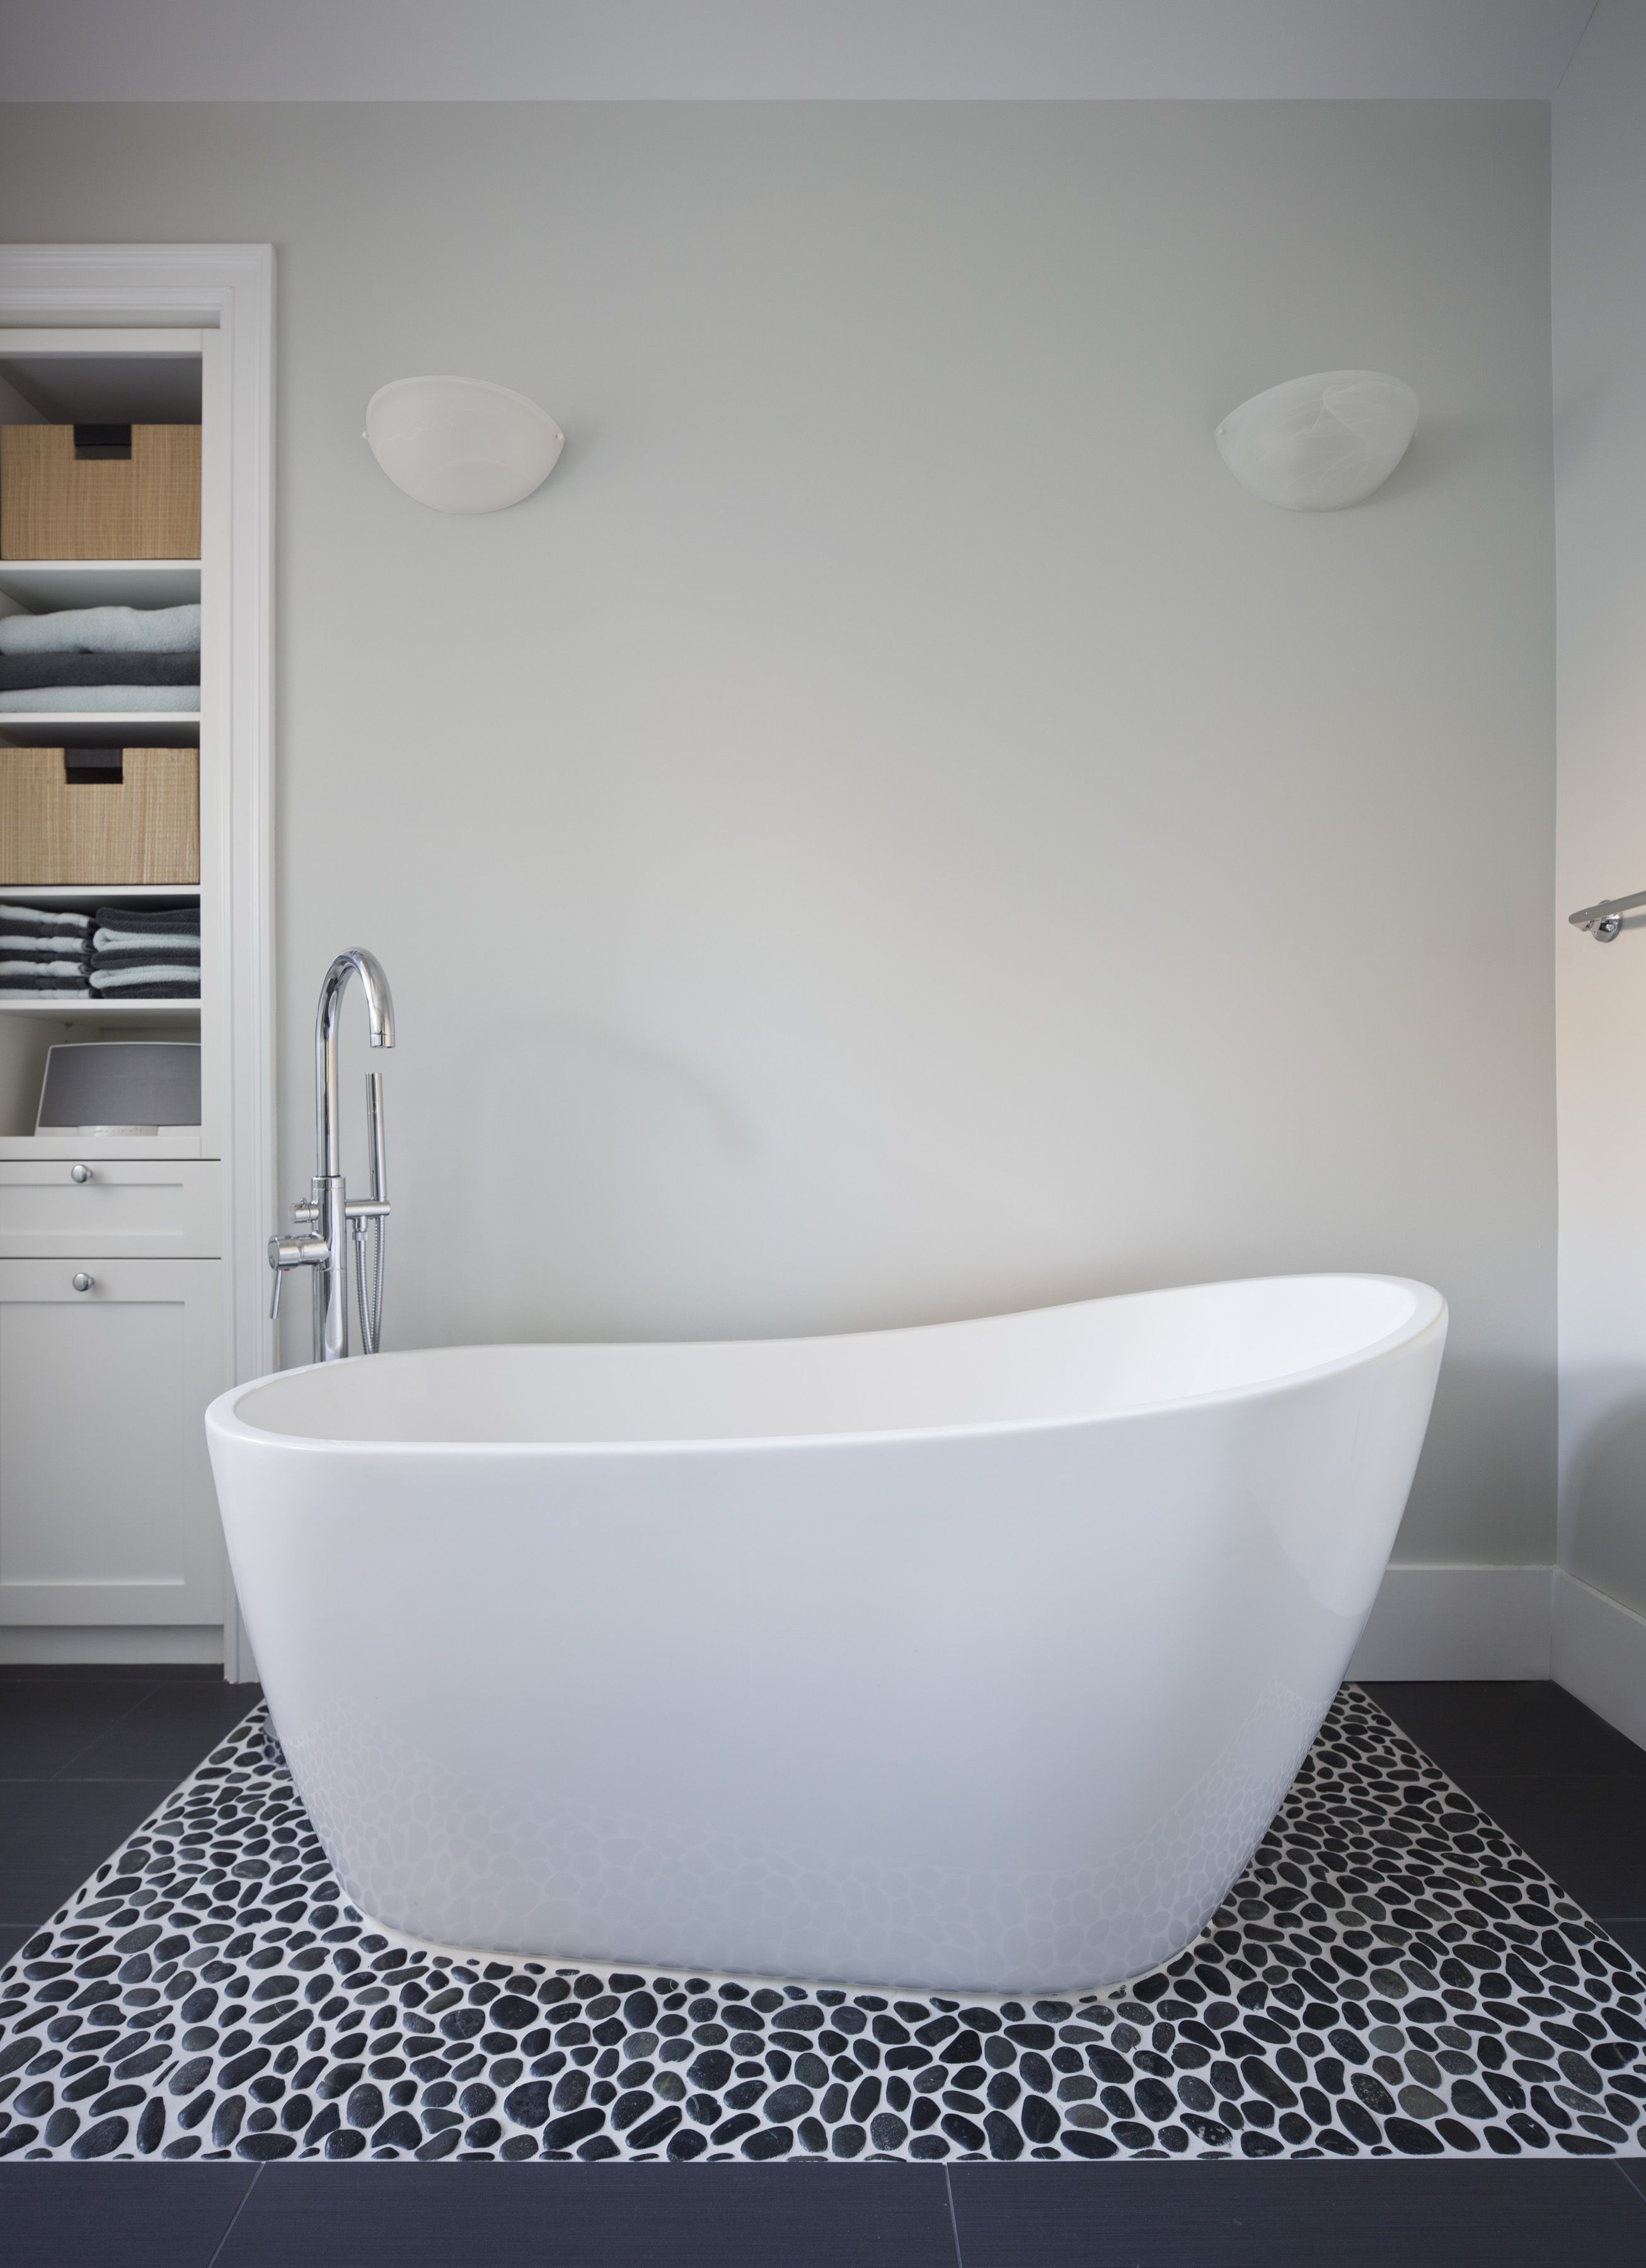 Soaking Tub And River Rock Tile  Portage Bay Playroom And More Classy Bathroom Remodel Seattle Design Inspiration